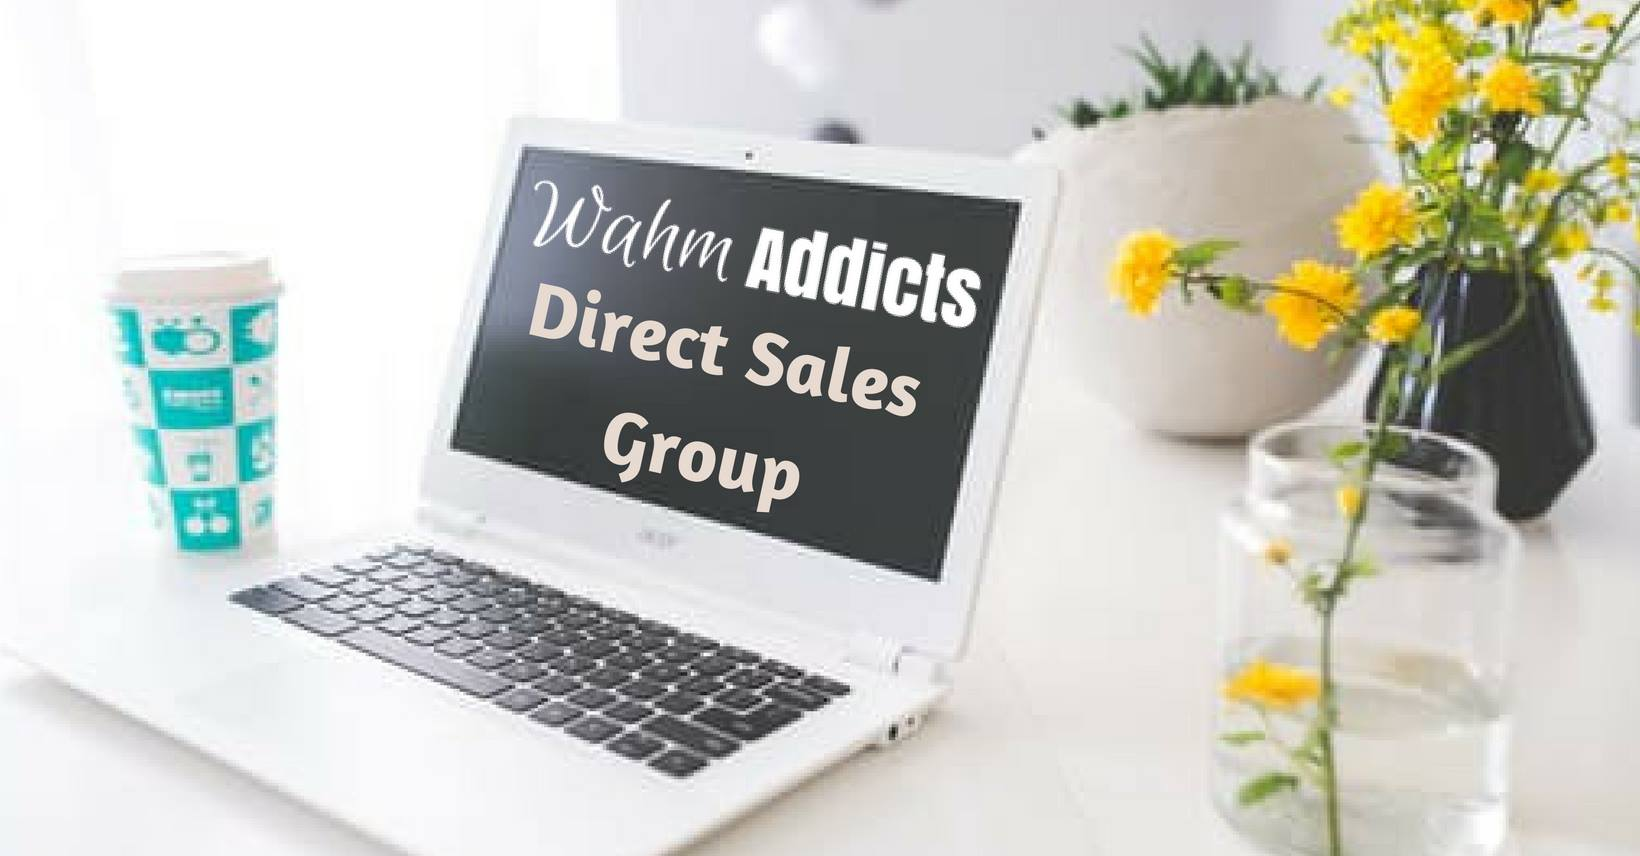 Wahm Addict Facebook Group